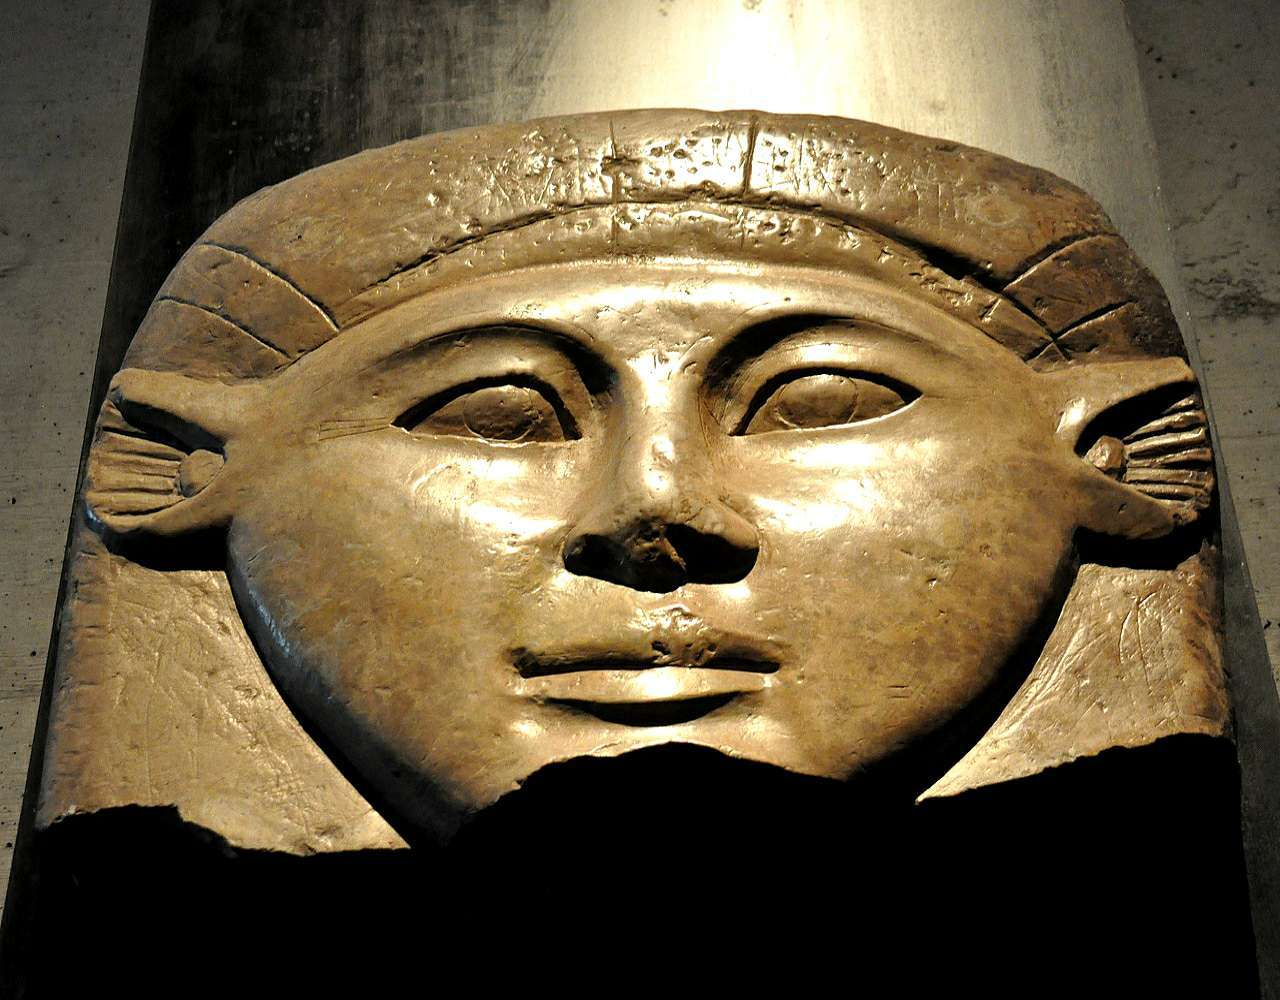 the head of the goddess Hathor, from Egypt